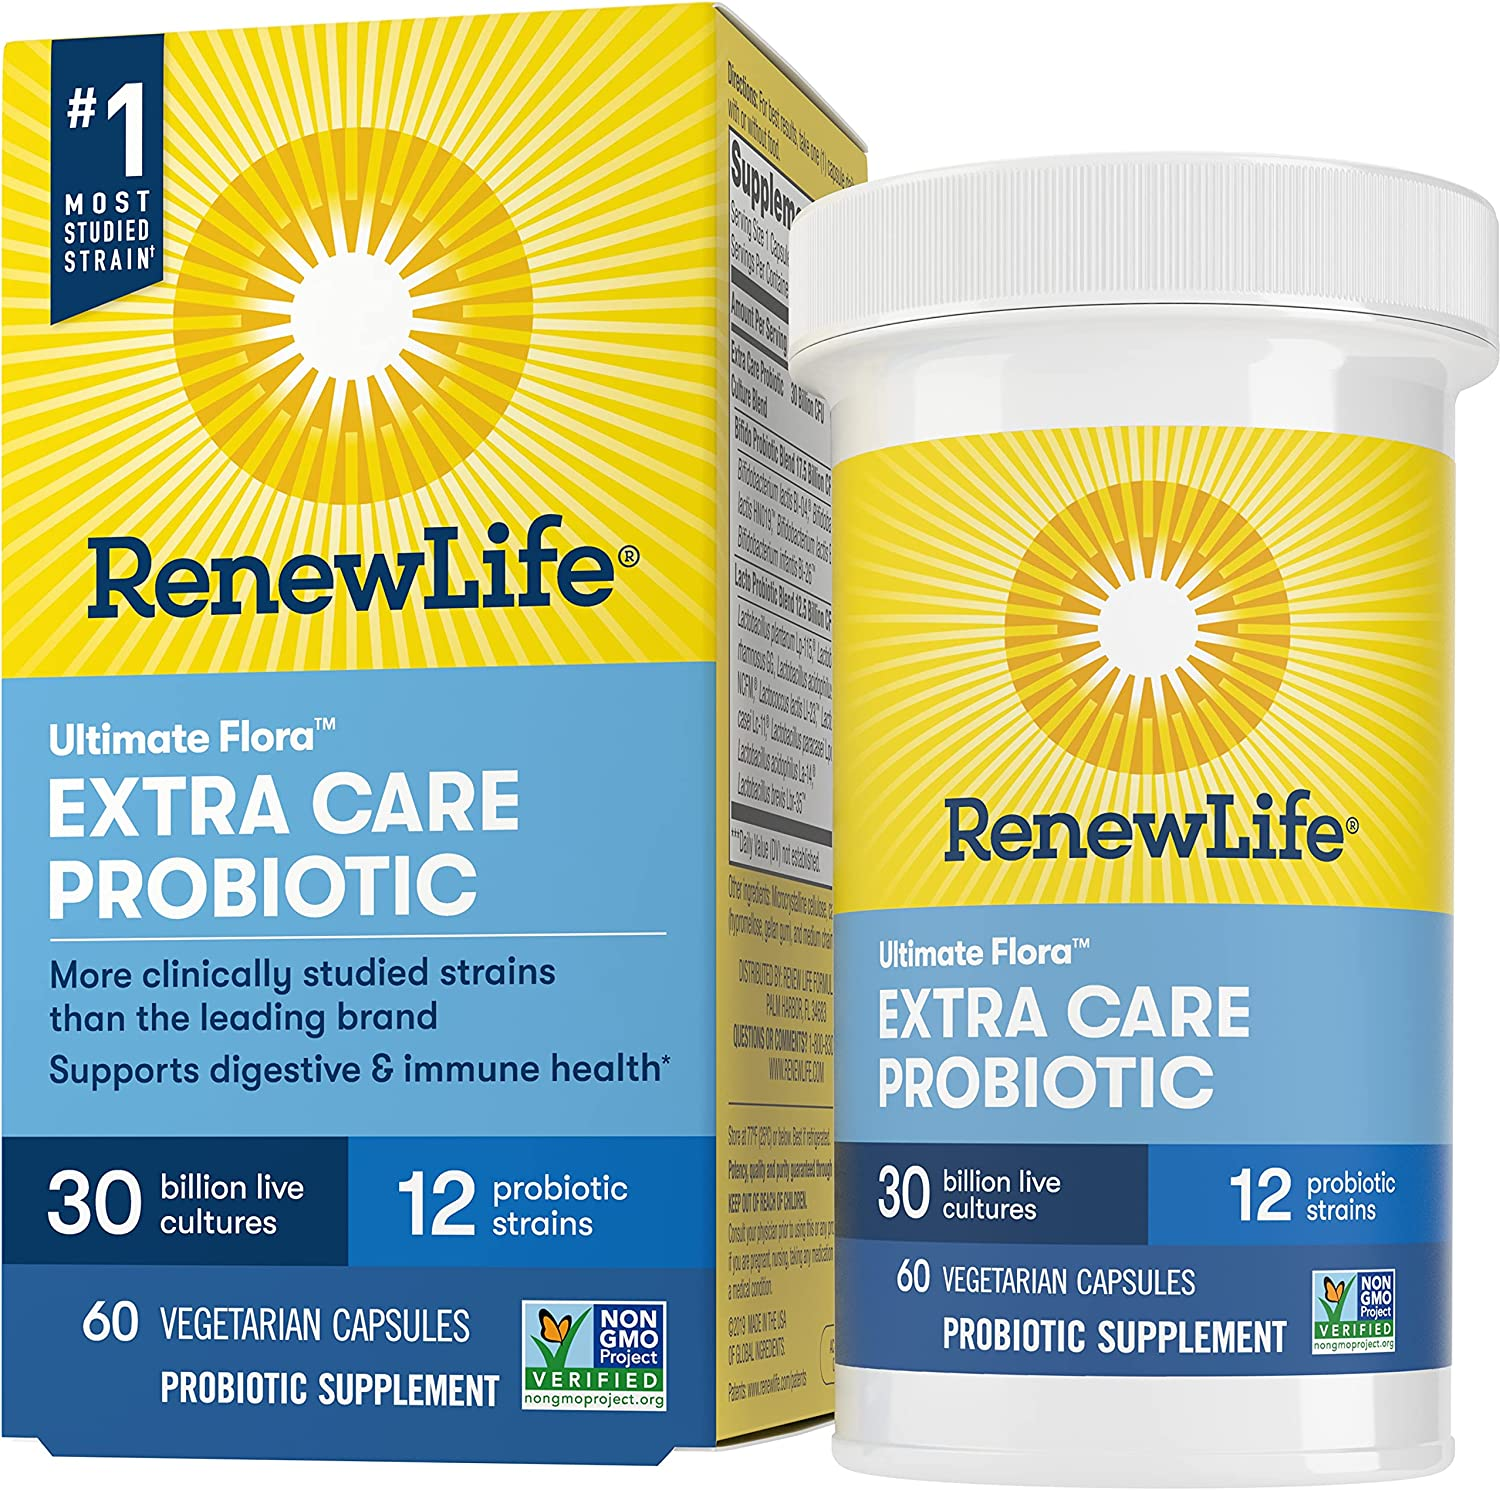 Renew Life Adult Probiotics 30 Billion CFU Guaranteed, 12 Strains, For Men & Women, Shelf Stable, Gluten Dairy & Soy Free, Ultimate Flora Extra Care, 60 Count, Pack of 1: Health & Personal Care